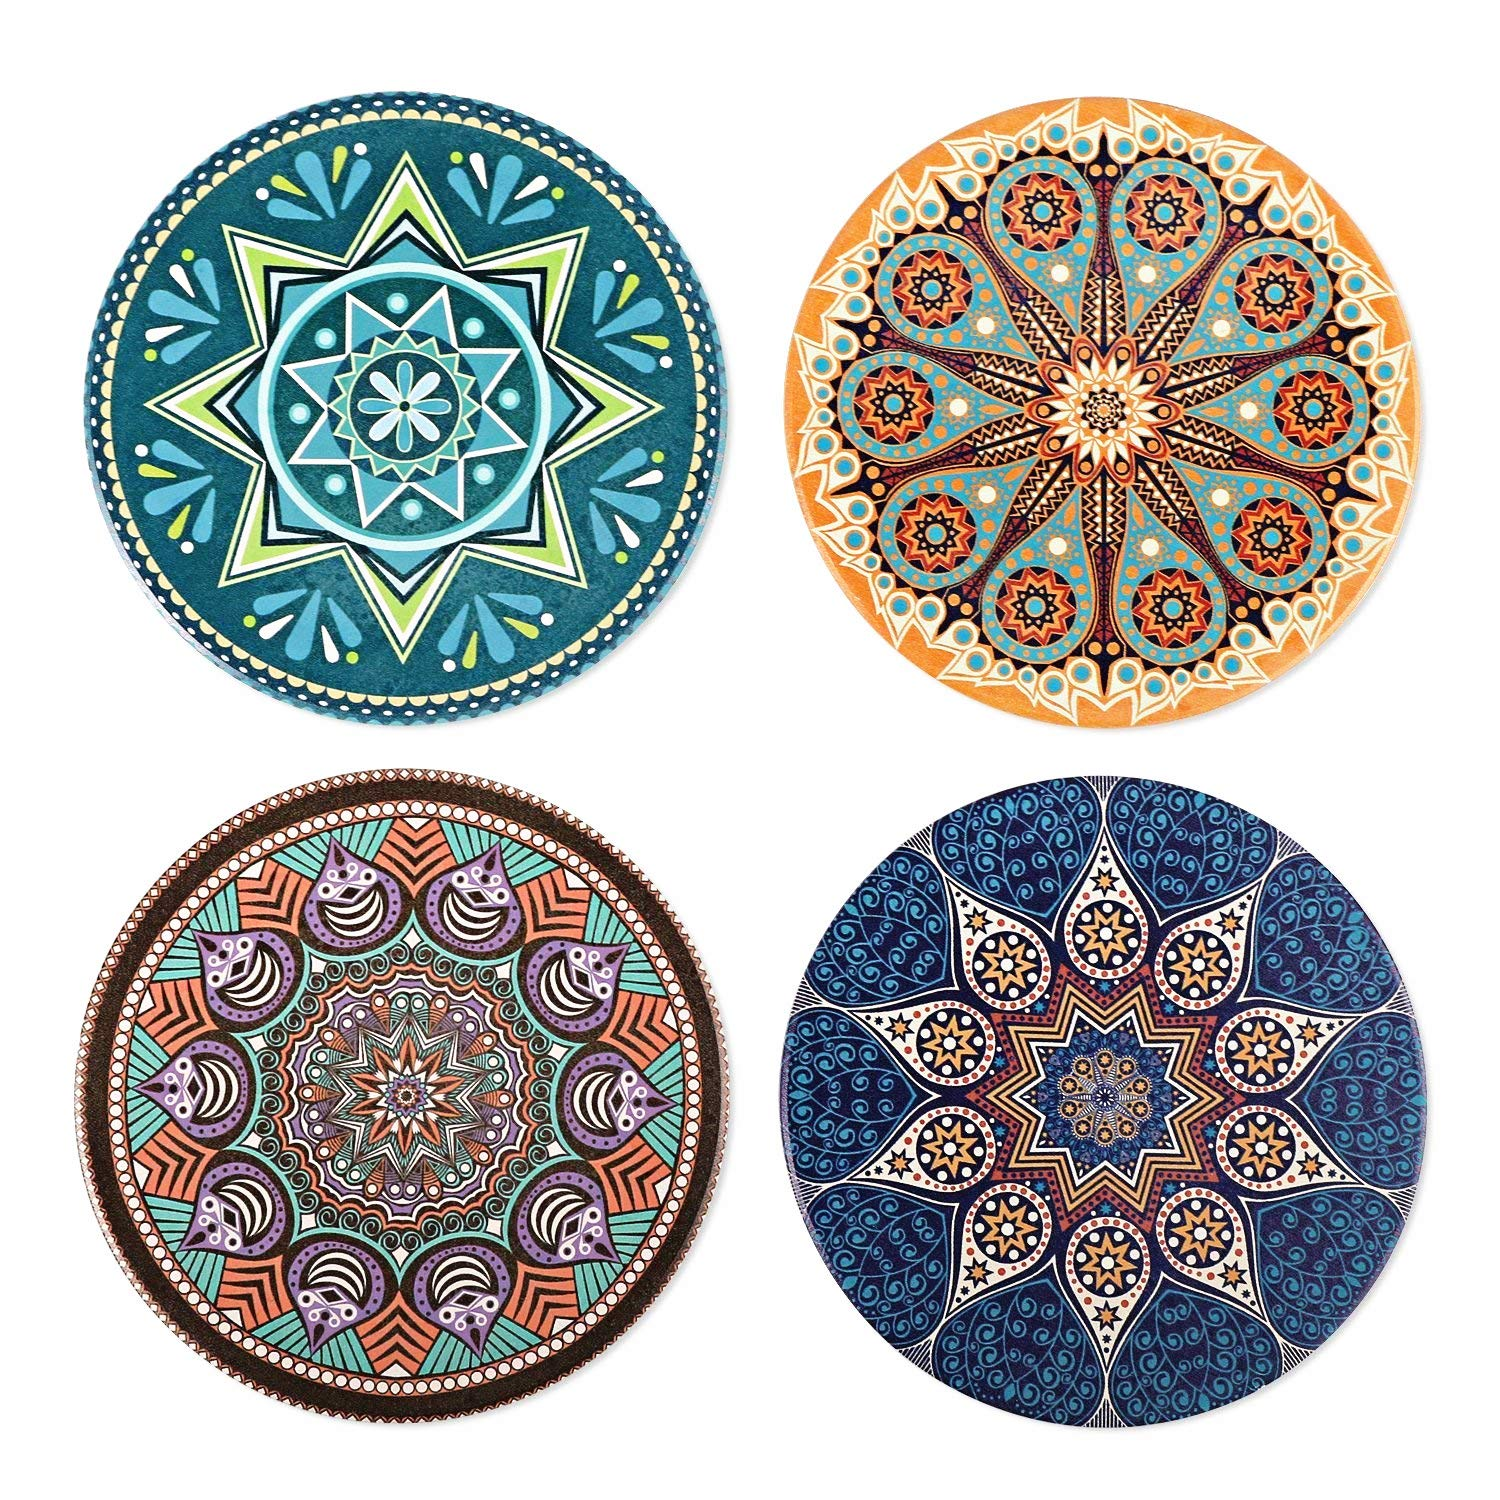 WATSON Coasters For Drinks Absorbent -4 Pack Large 4.0'' Size Ceramic Stone Coaster With Cork Back, Bohemia Style-Prevent Furniture from Dirty and Scratched.